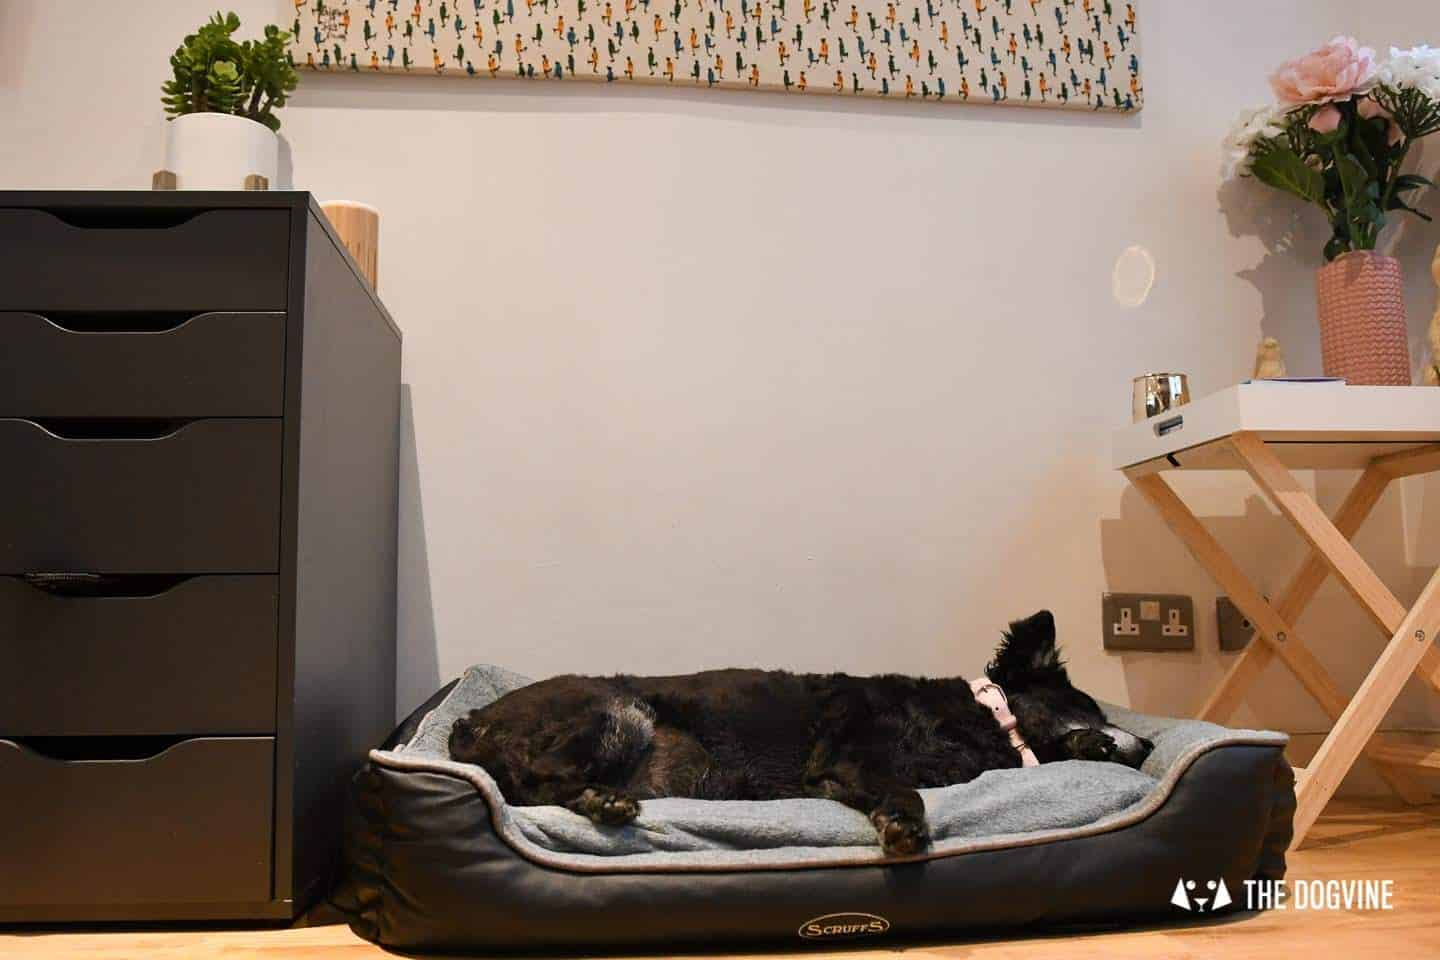 Paws Up For The Scruffs Orthopaedic Dog Bed - Chateau Box Bed Review 7